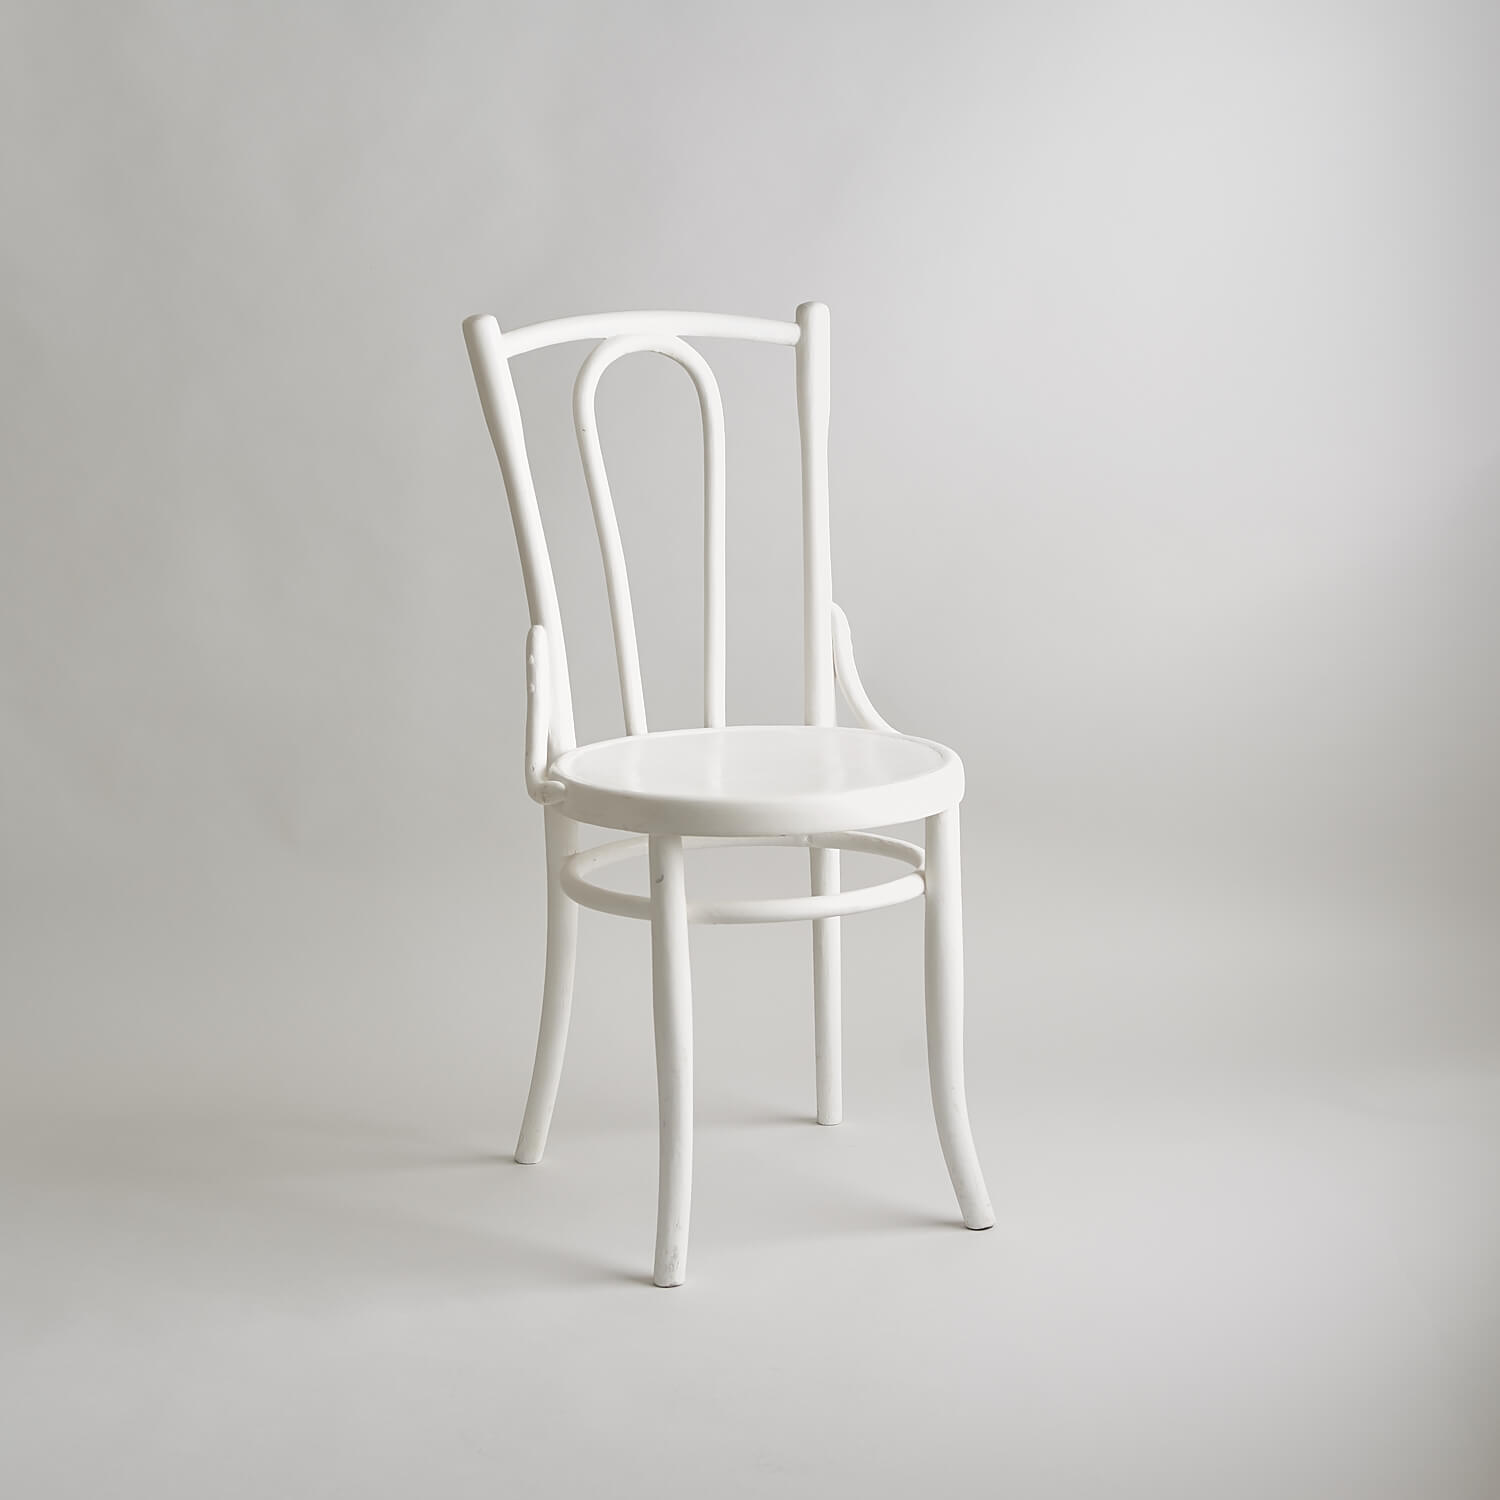 Painted white bentwood chair studio furniture